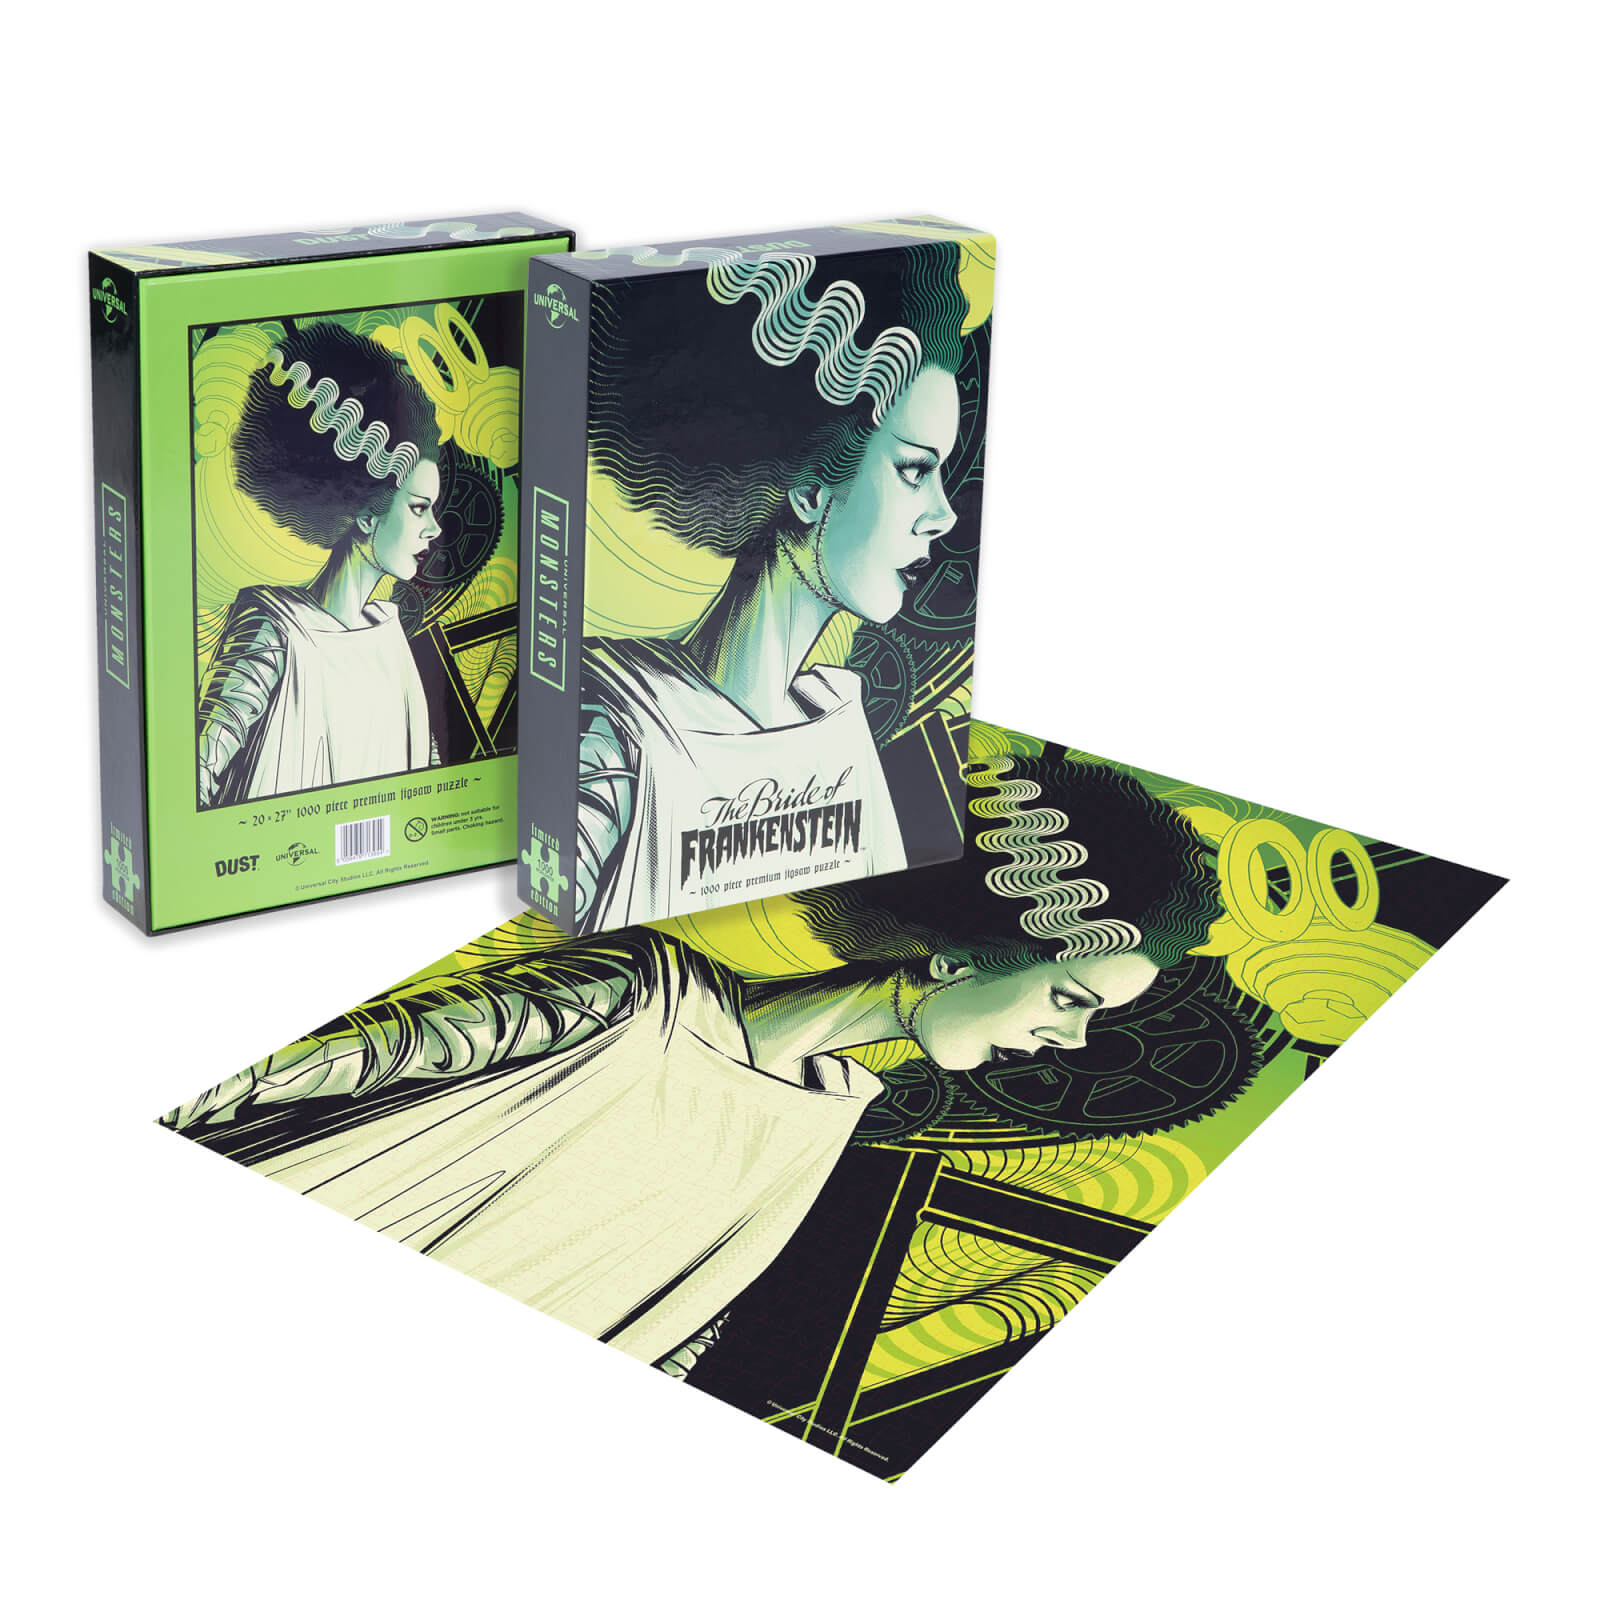 Image of Dust! Universal Monsters The Bride of Frankenstein 1000pc Puzzle - Zavvi Exclusive